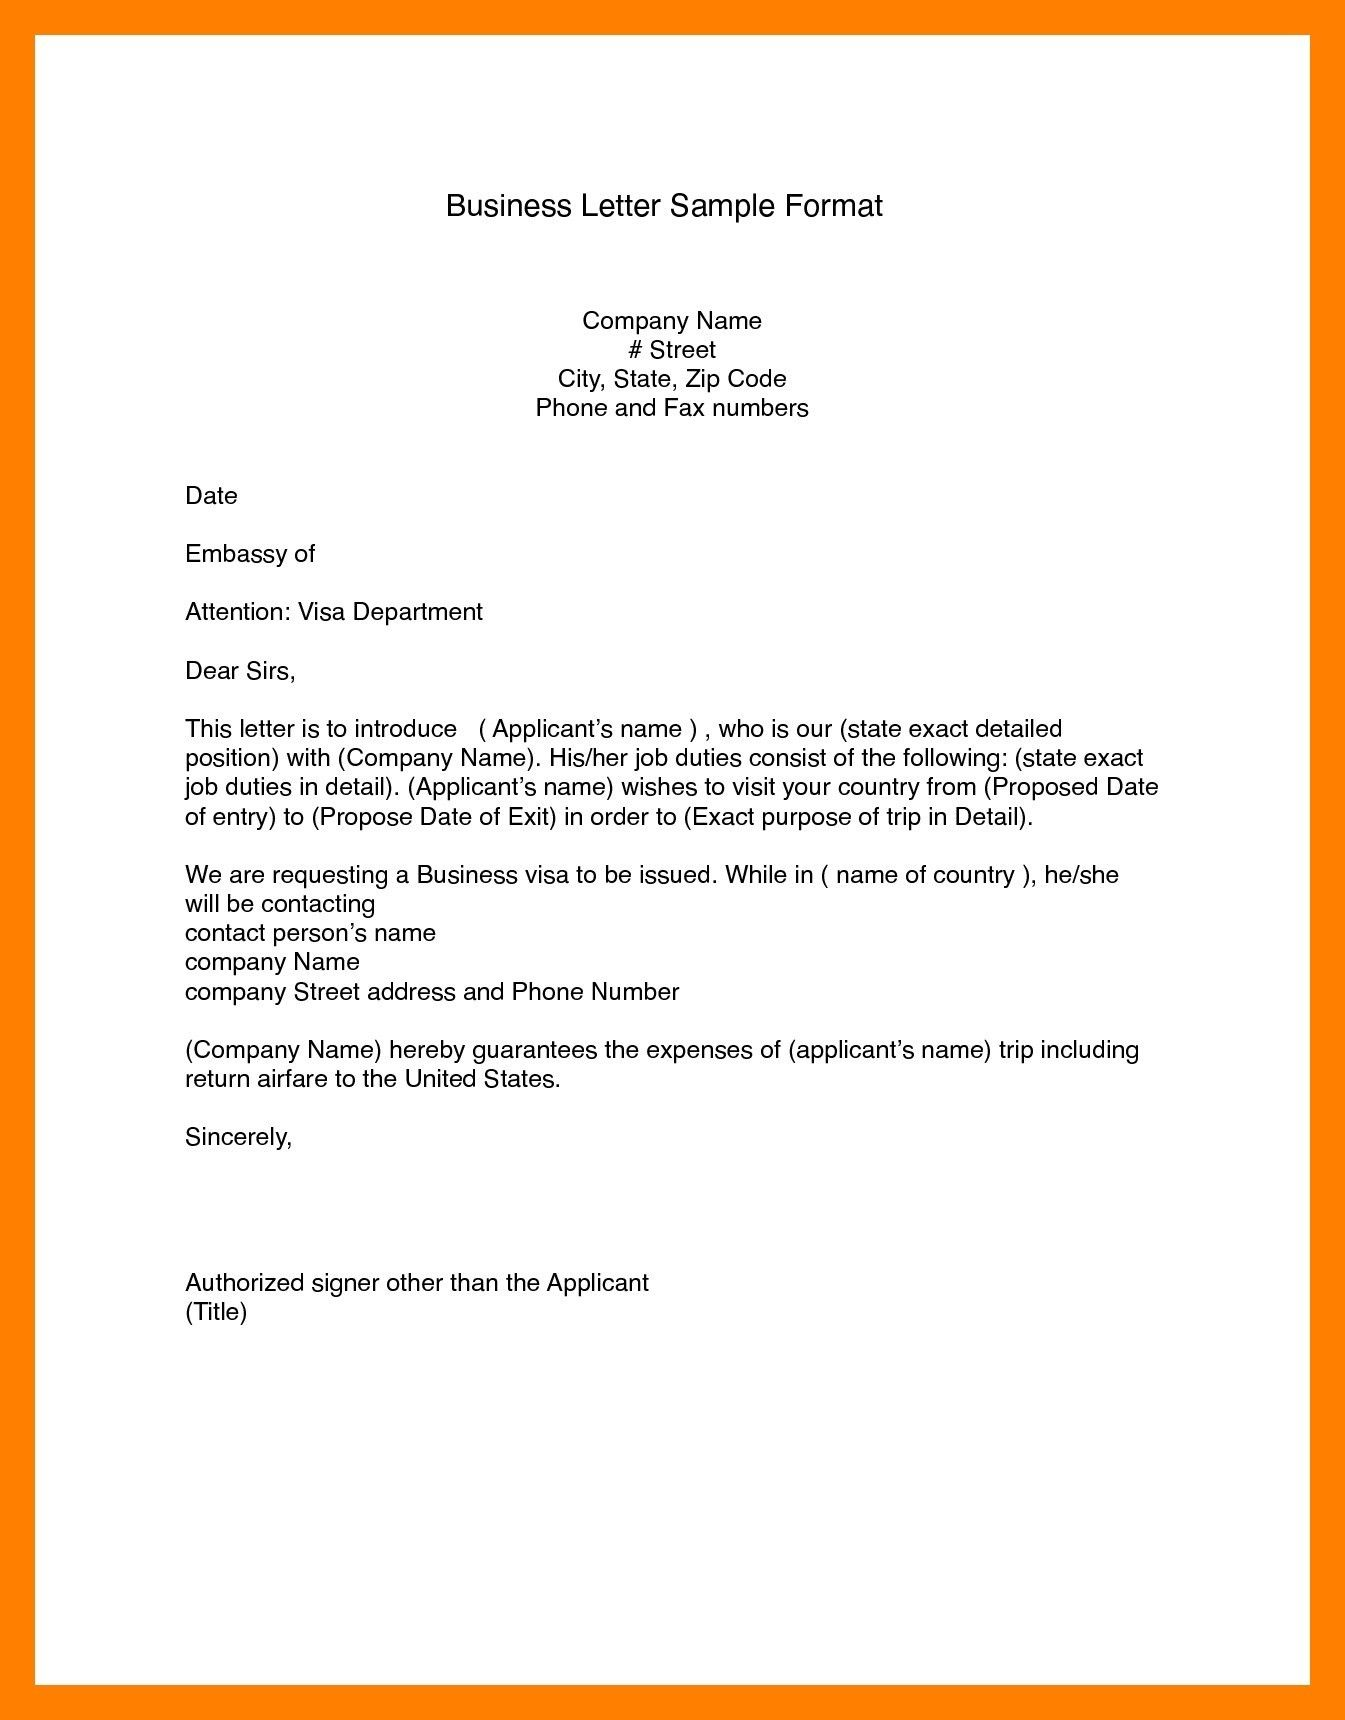 Business Letter Format Word (14) in 2020 Business letter